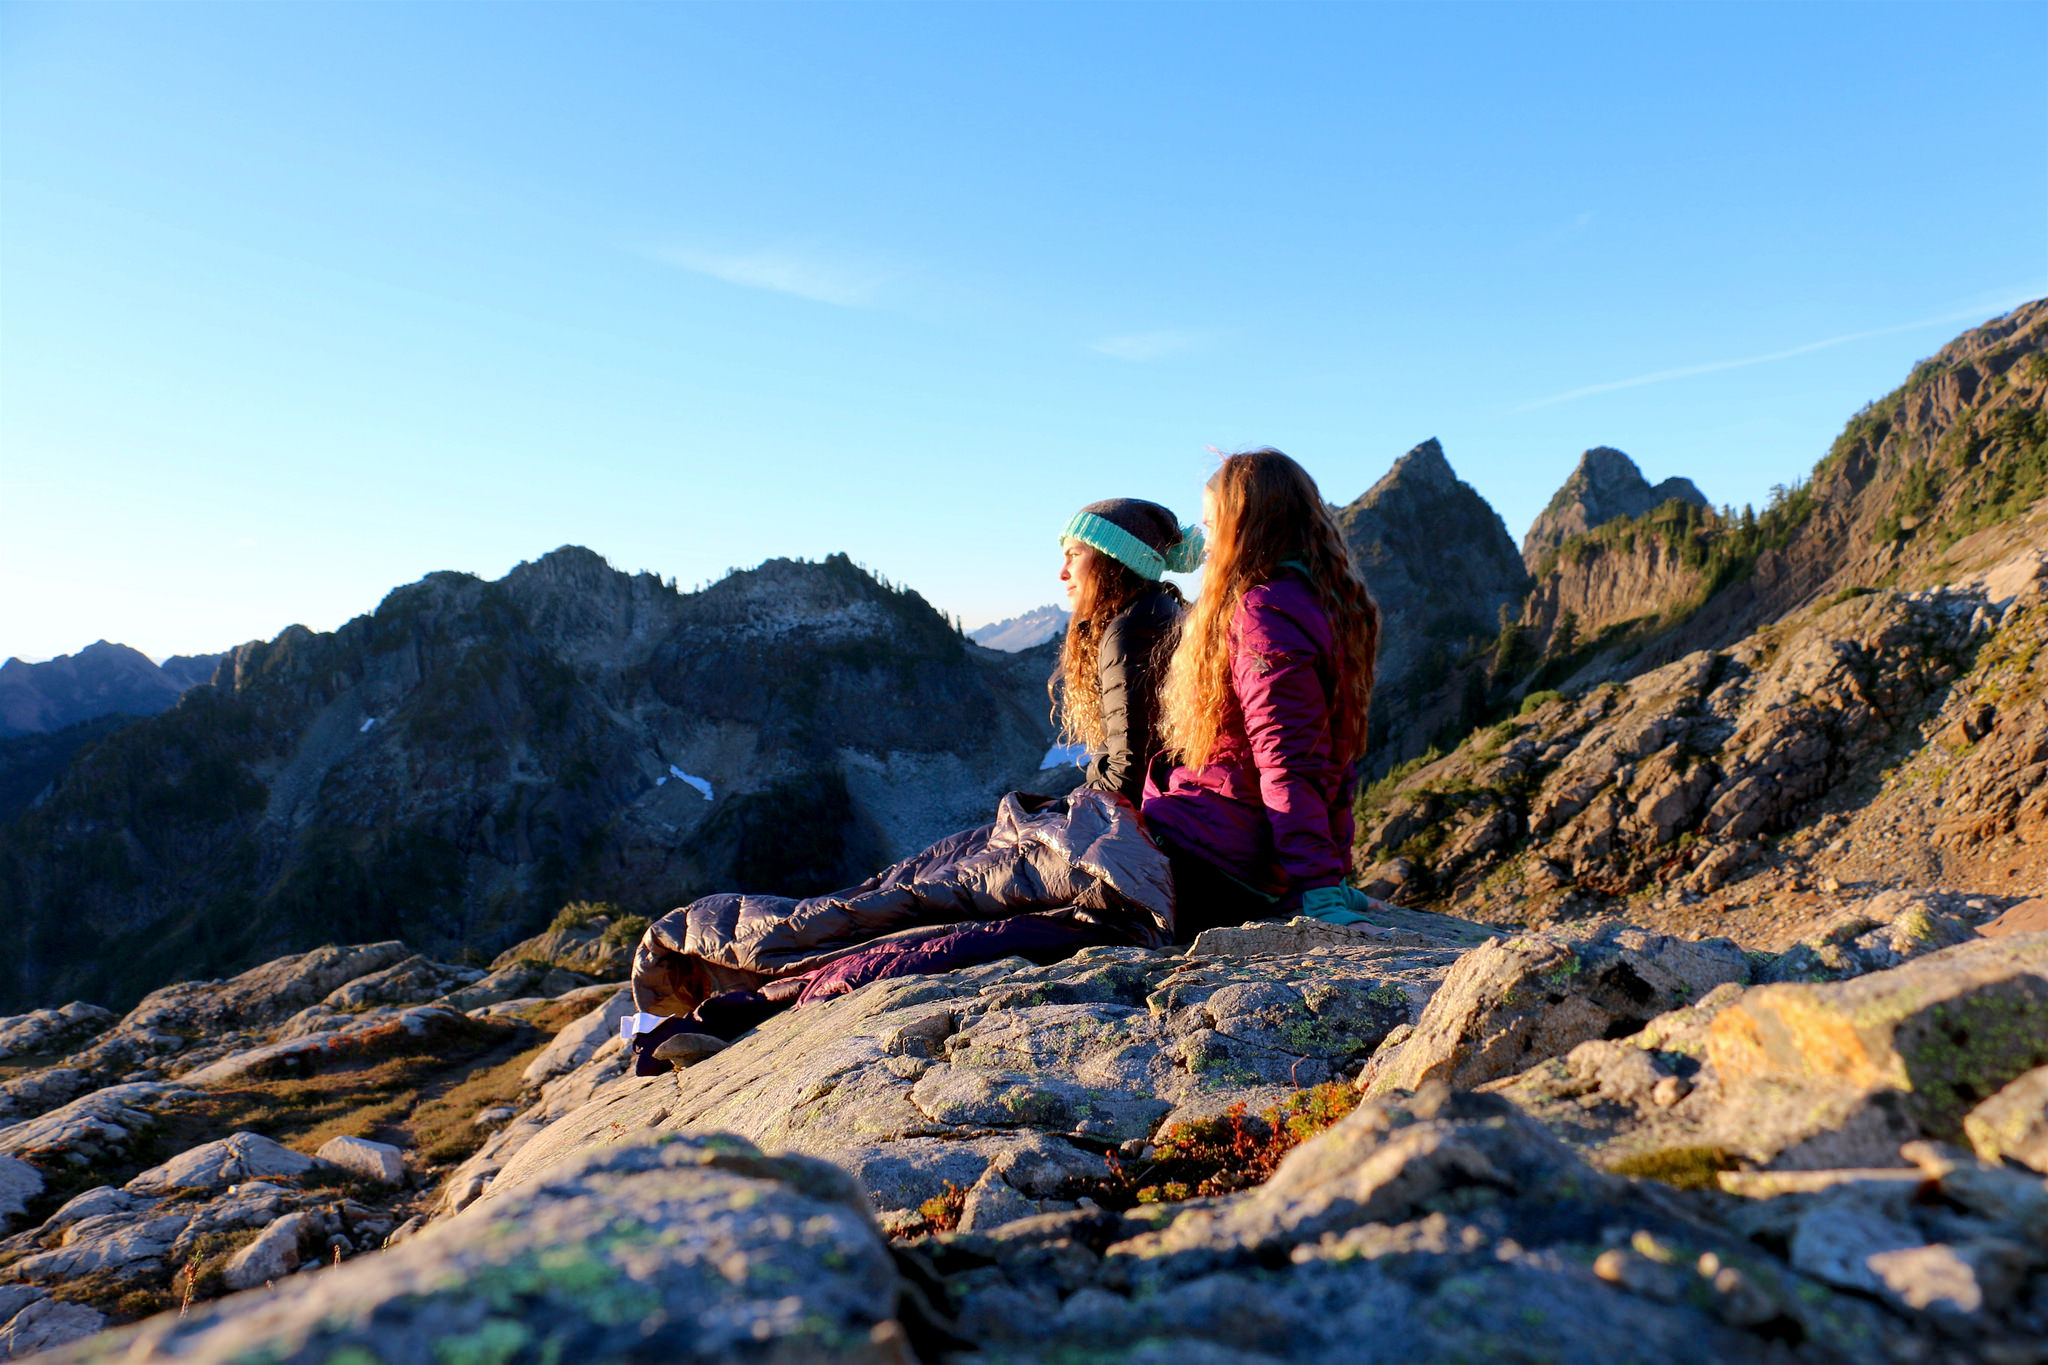 Watching the sunset. Photo by Molly Henling.